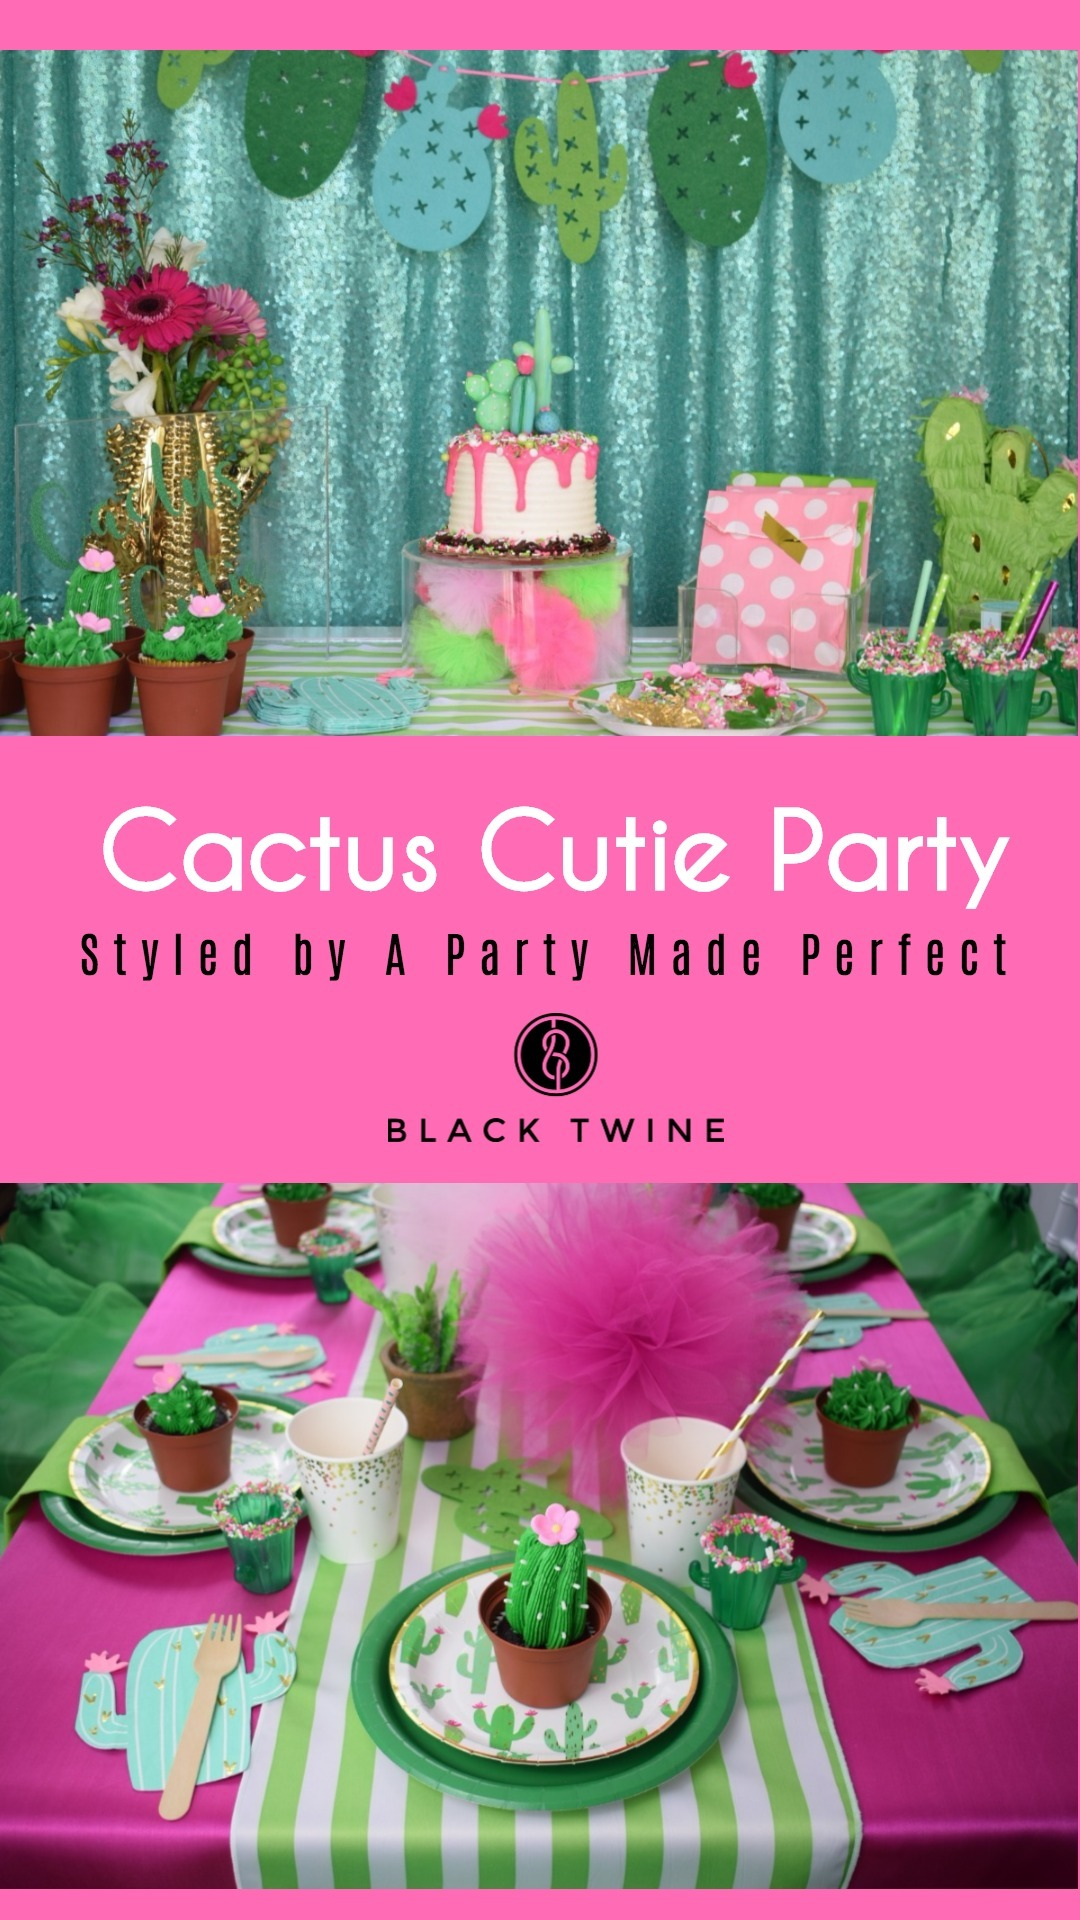 Cactus Cutie Party Styled by A Party Made Perfect | Black Twine